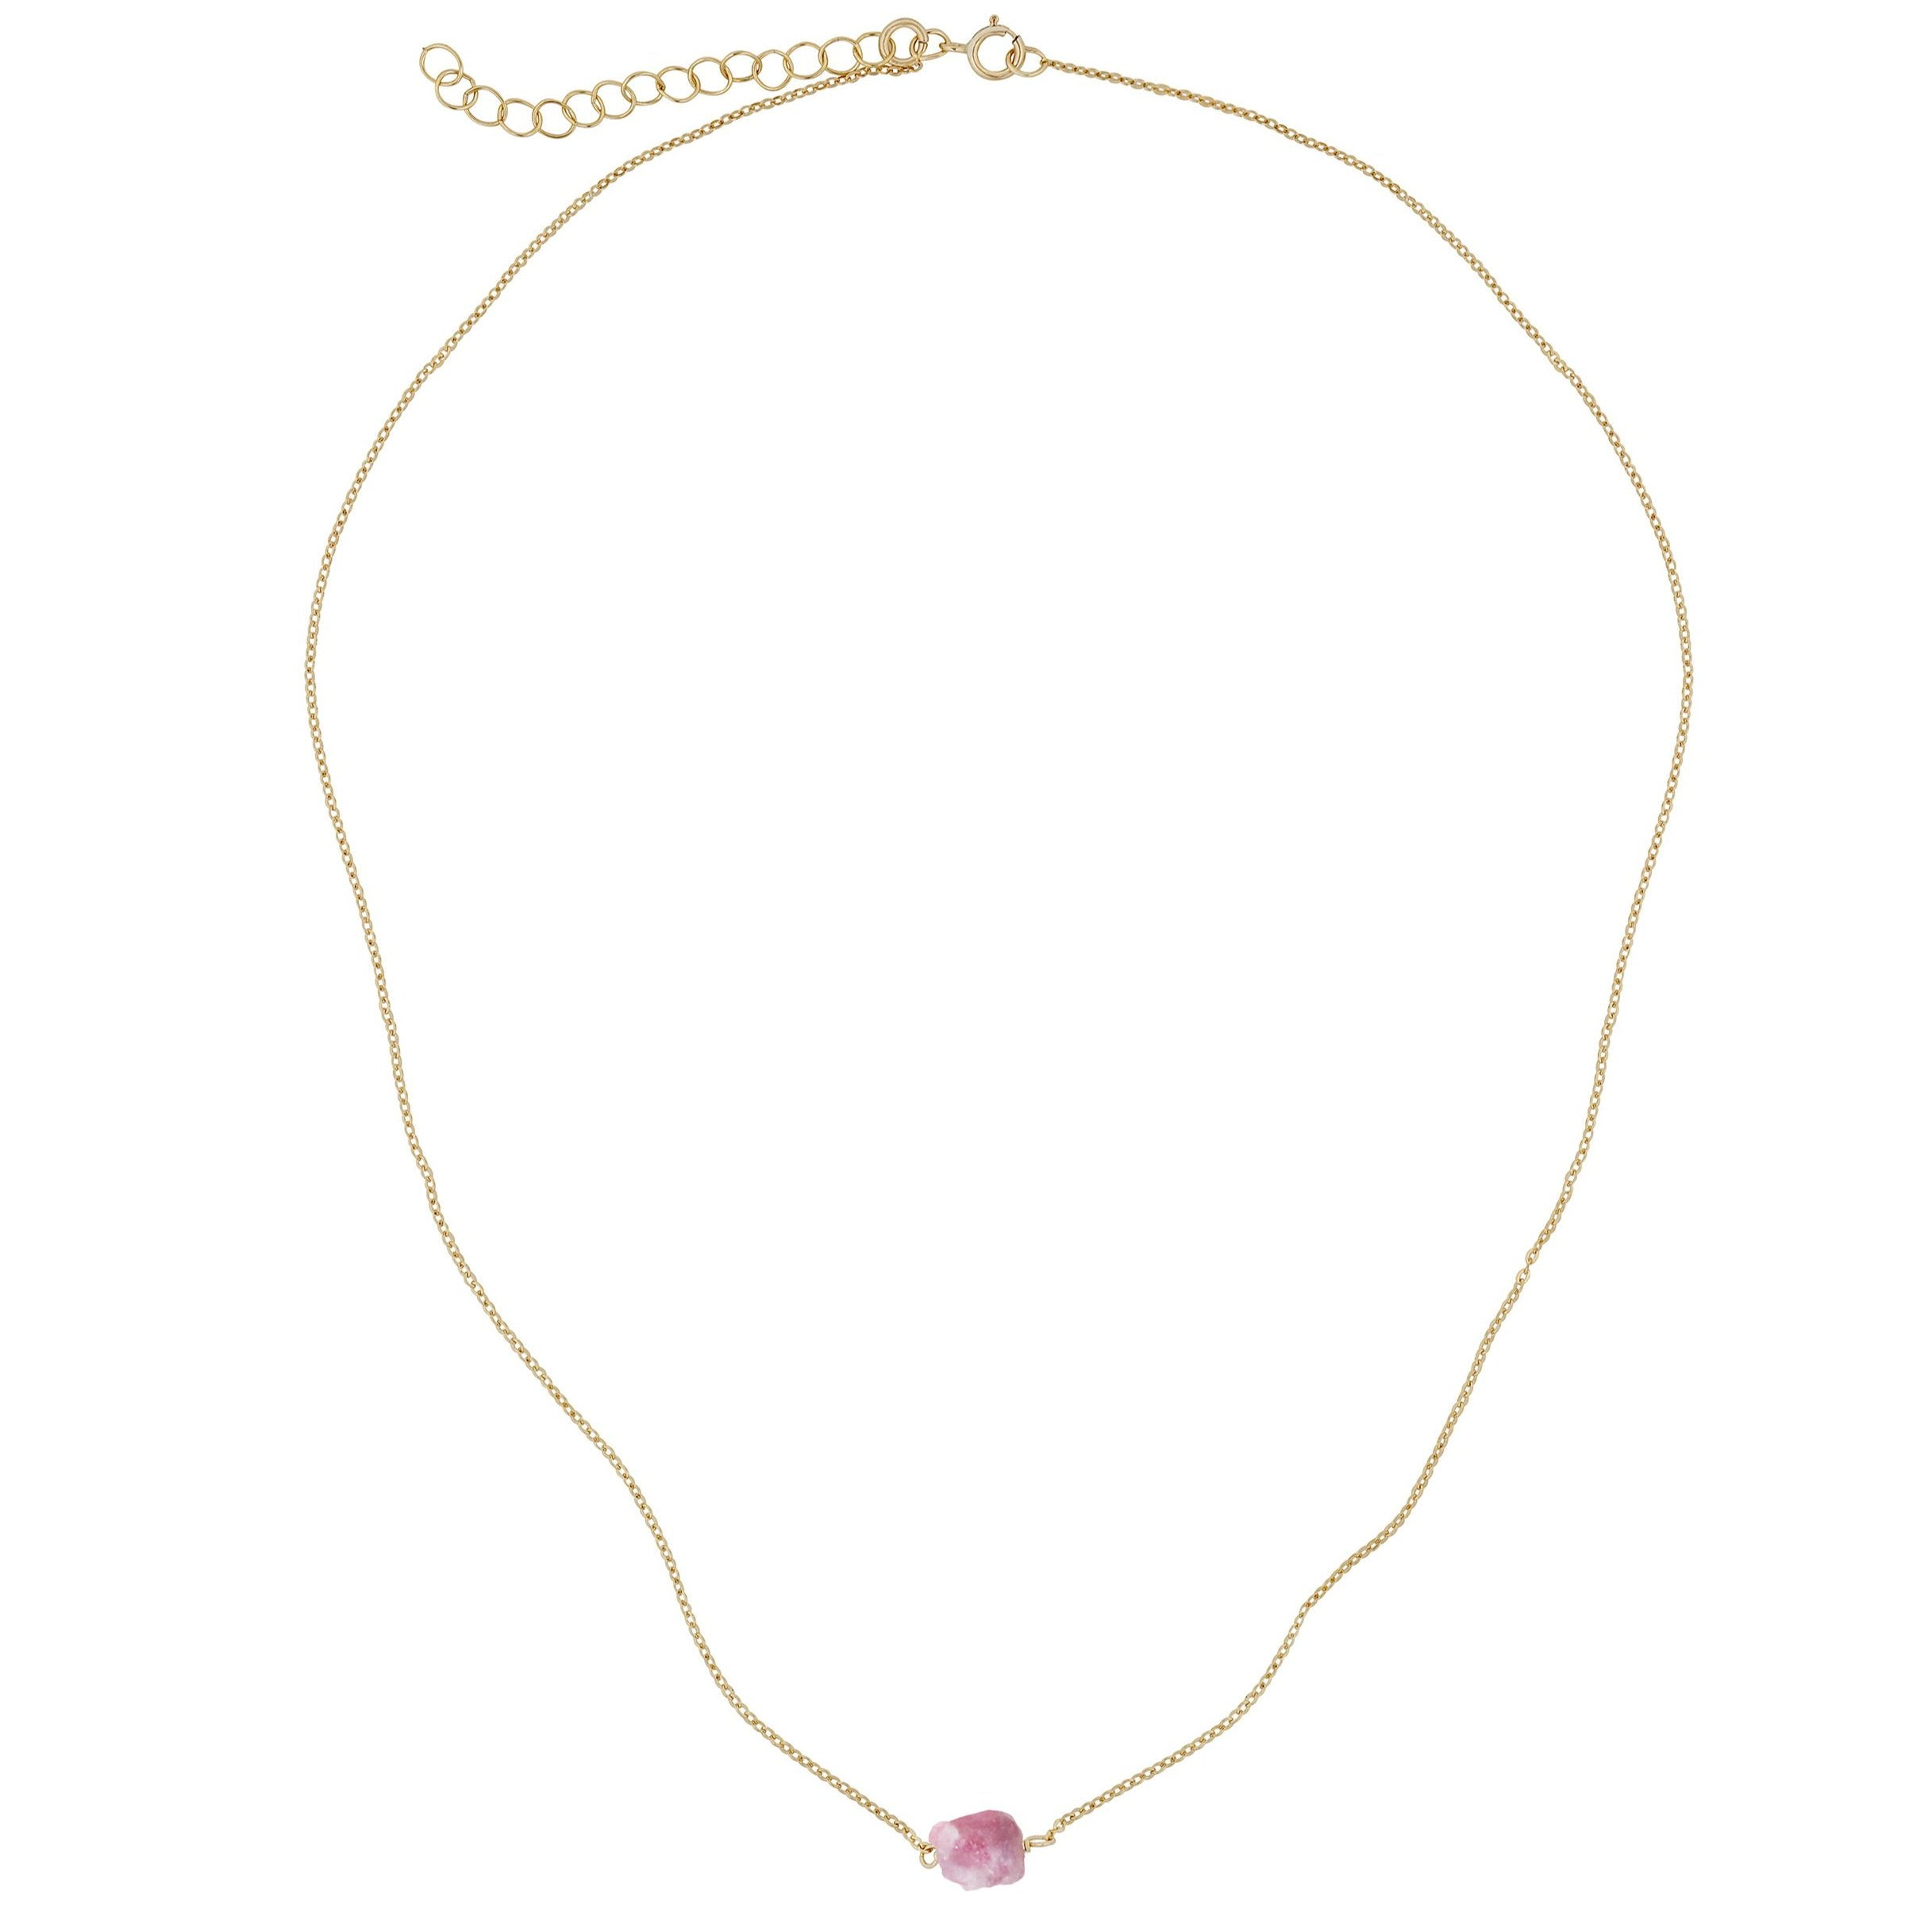 Gara Danielle Pink Tourmaline 14K Gold-Filled Necklace